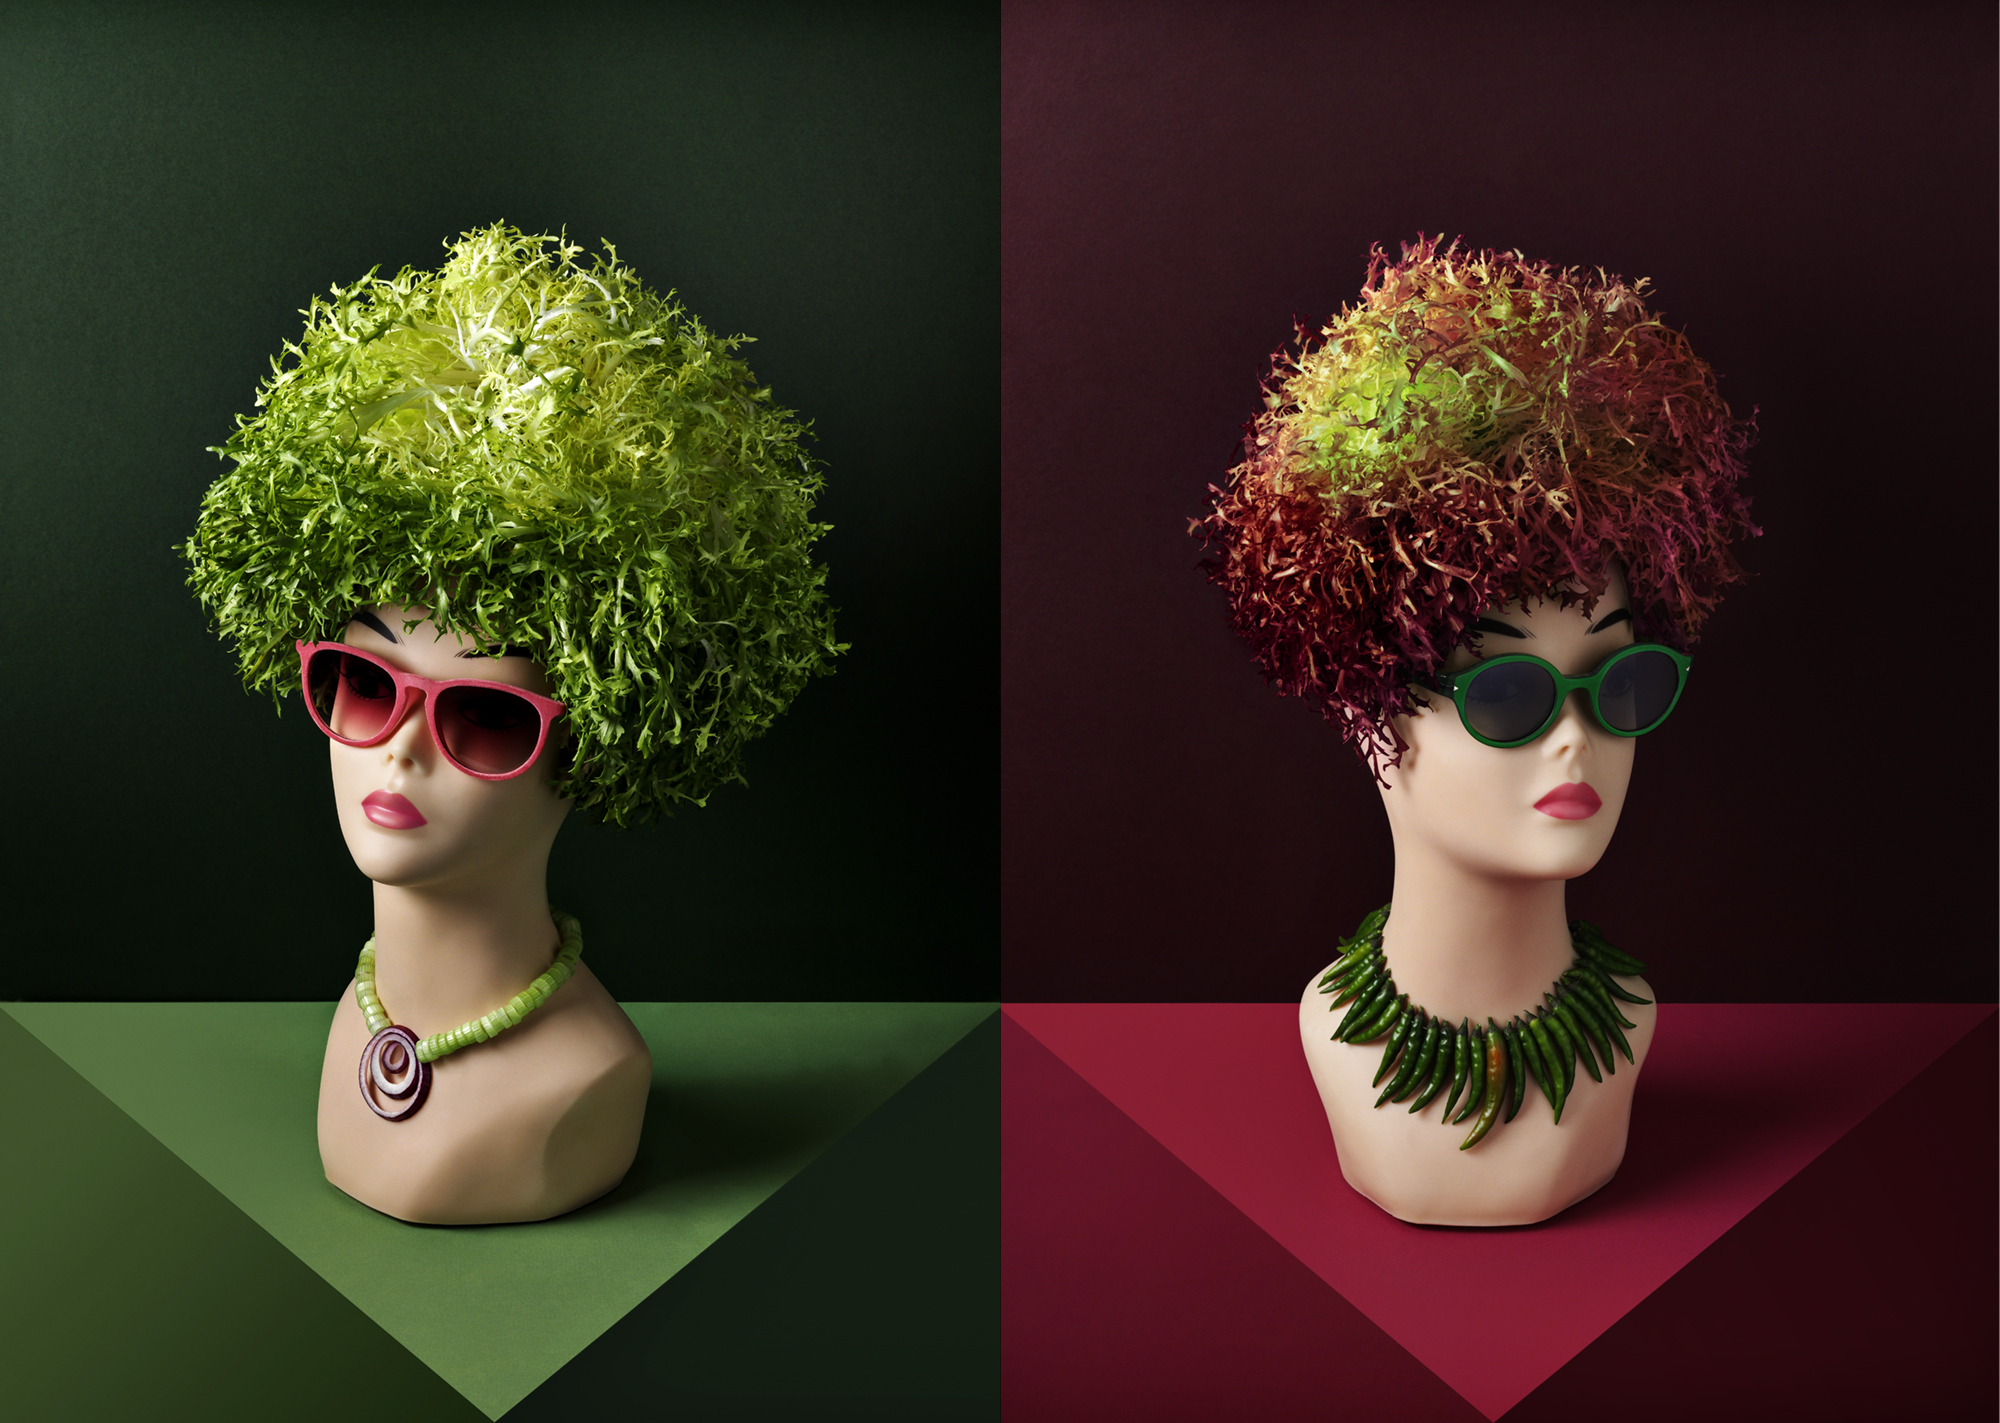 Hilary-Moore-food-Photography-lettuce heads-slideshowB.jpg